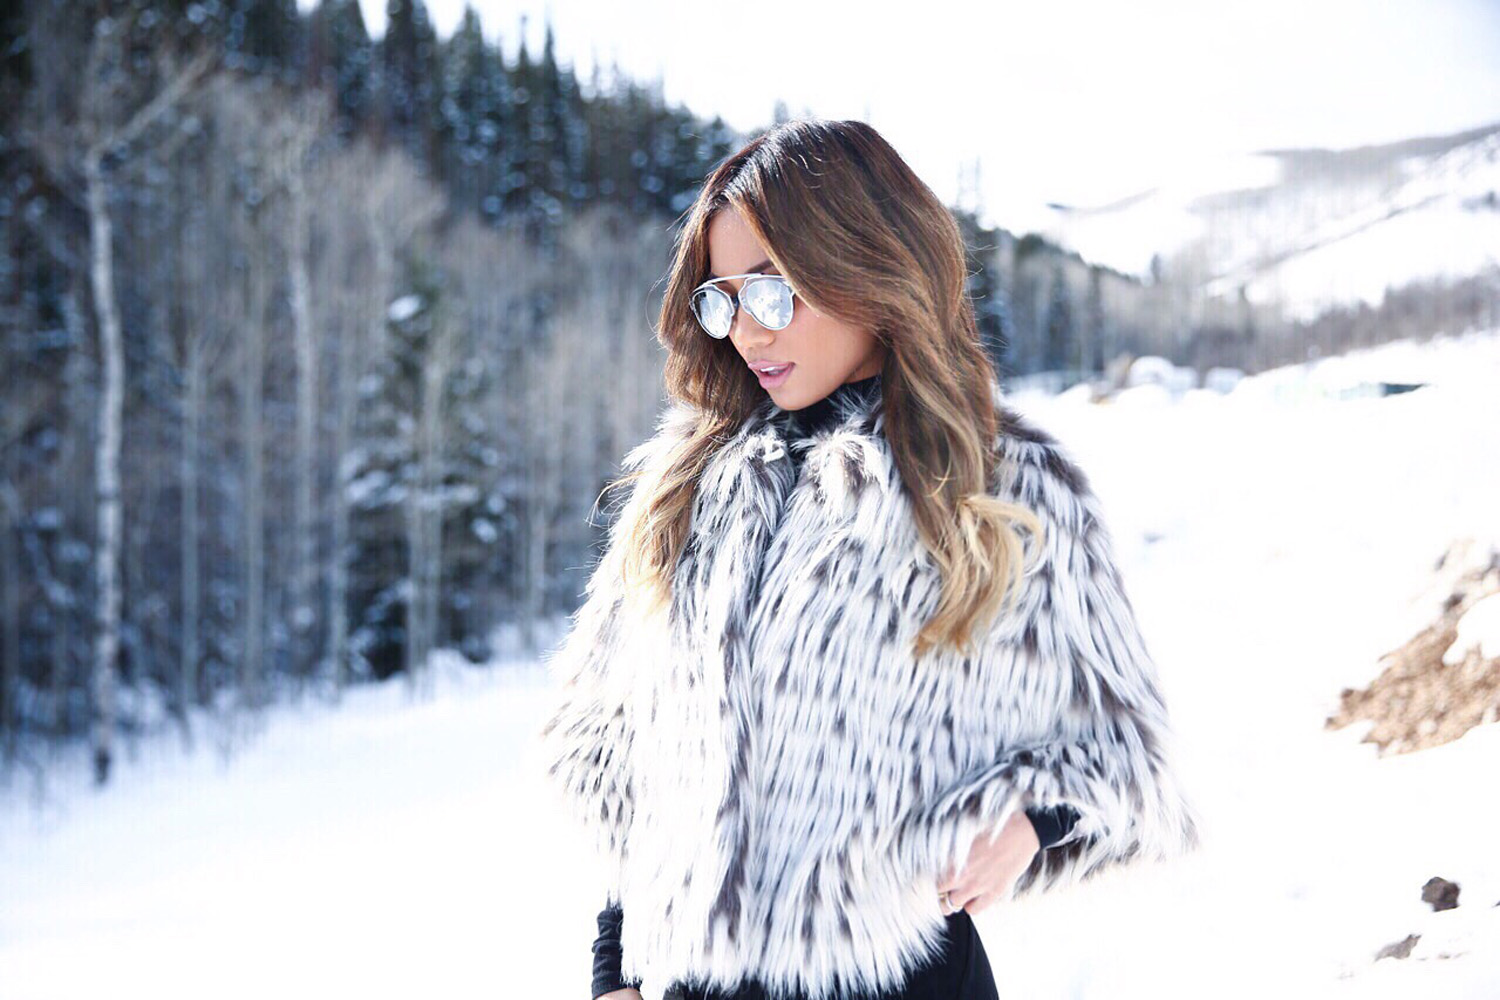 Jessi Malay for Forray Collective in Park City, Utah